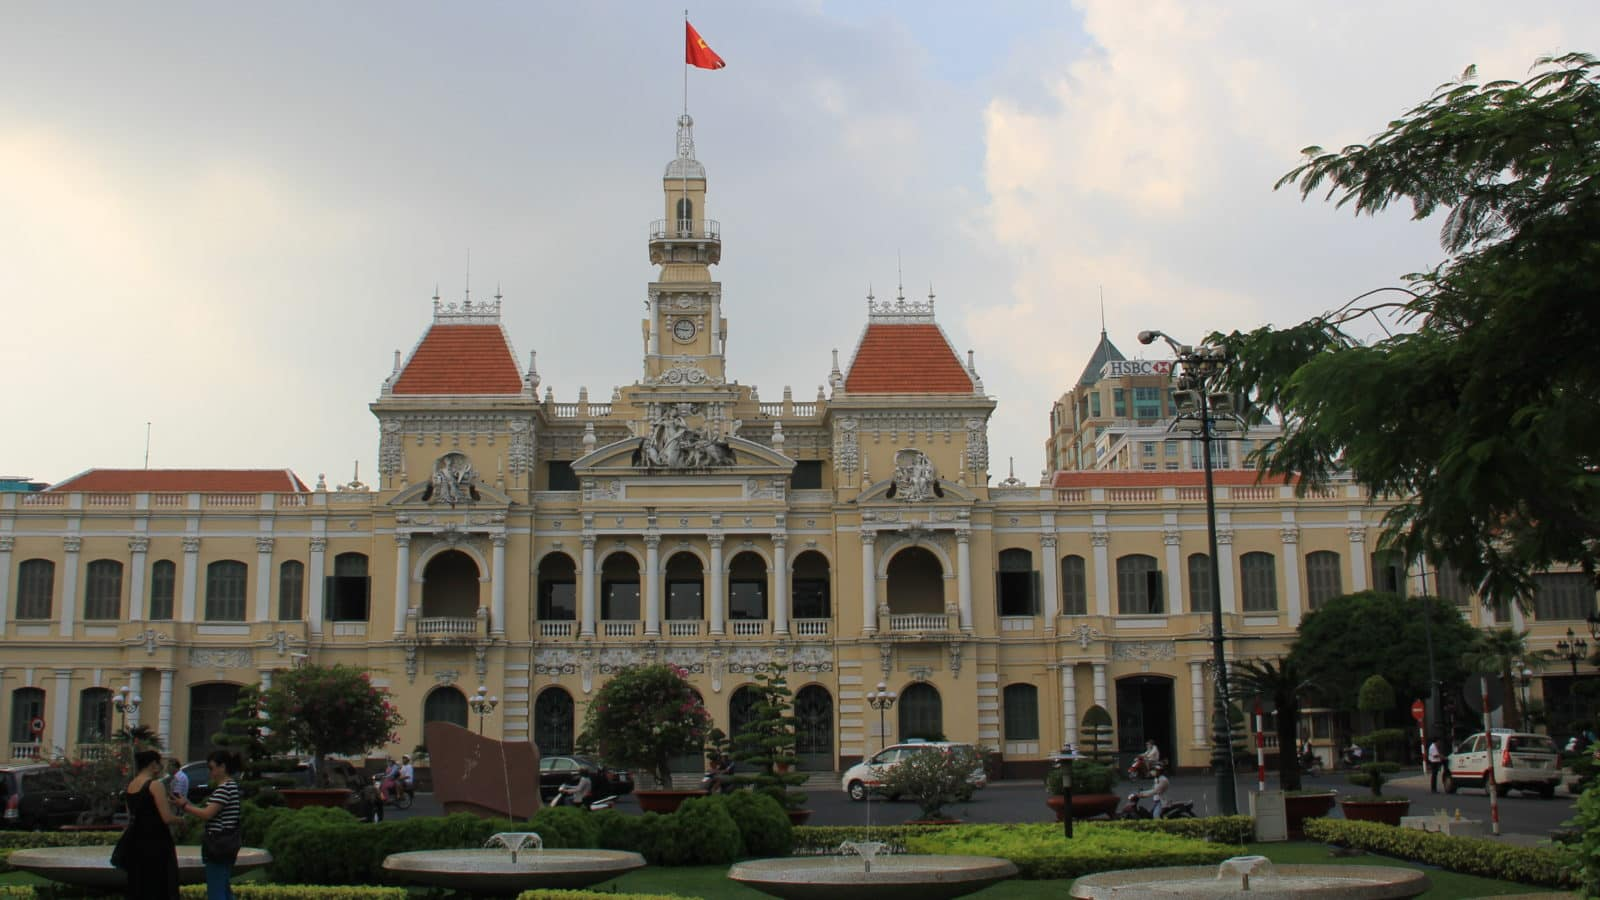 an overview of ho chi minh city Ho chi minh city overview visitors speak favorably about all that ho chi minh city has to offer, including its museums, cafés, and restaurants.